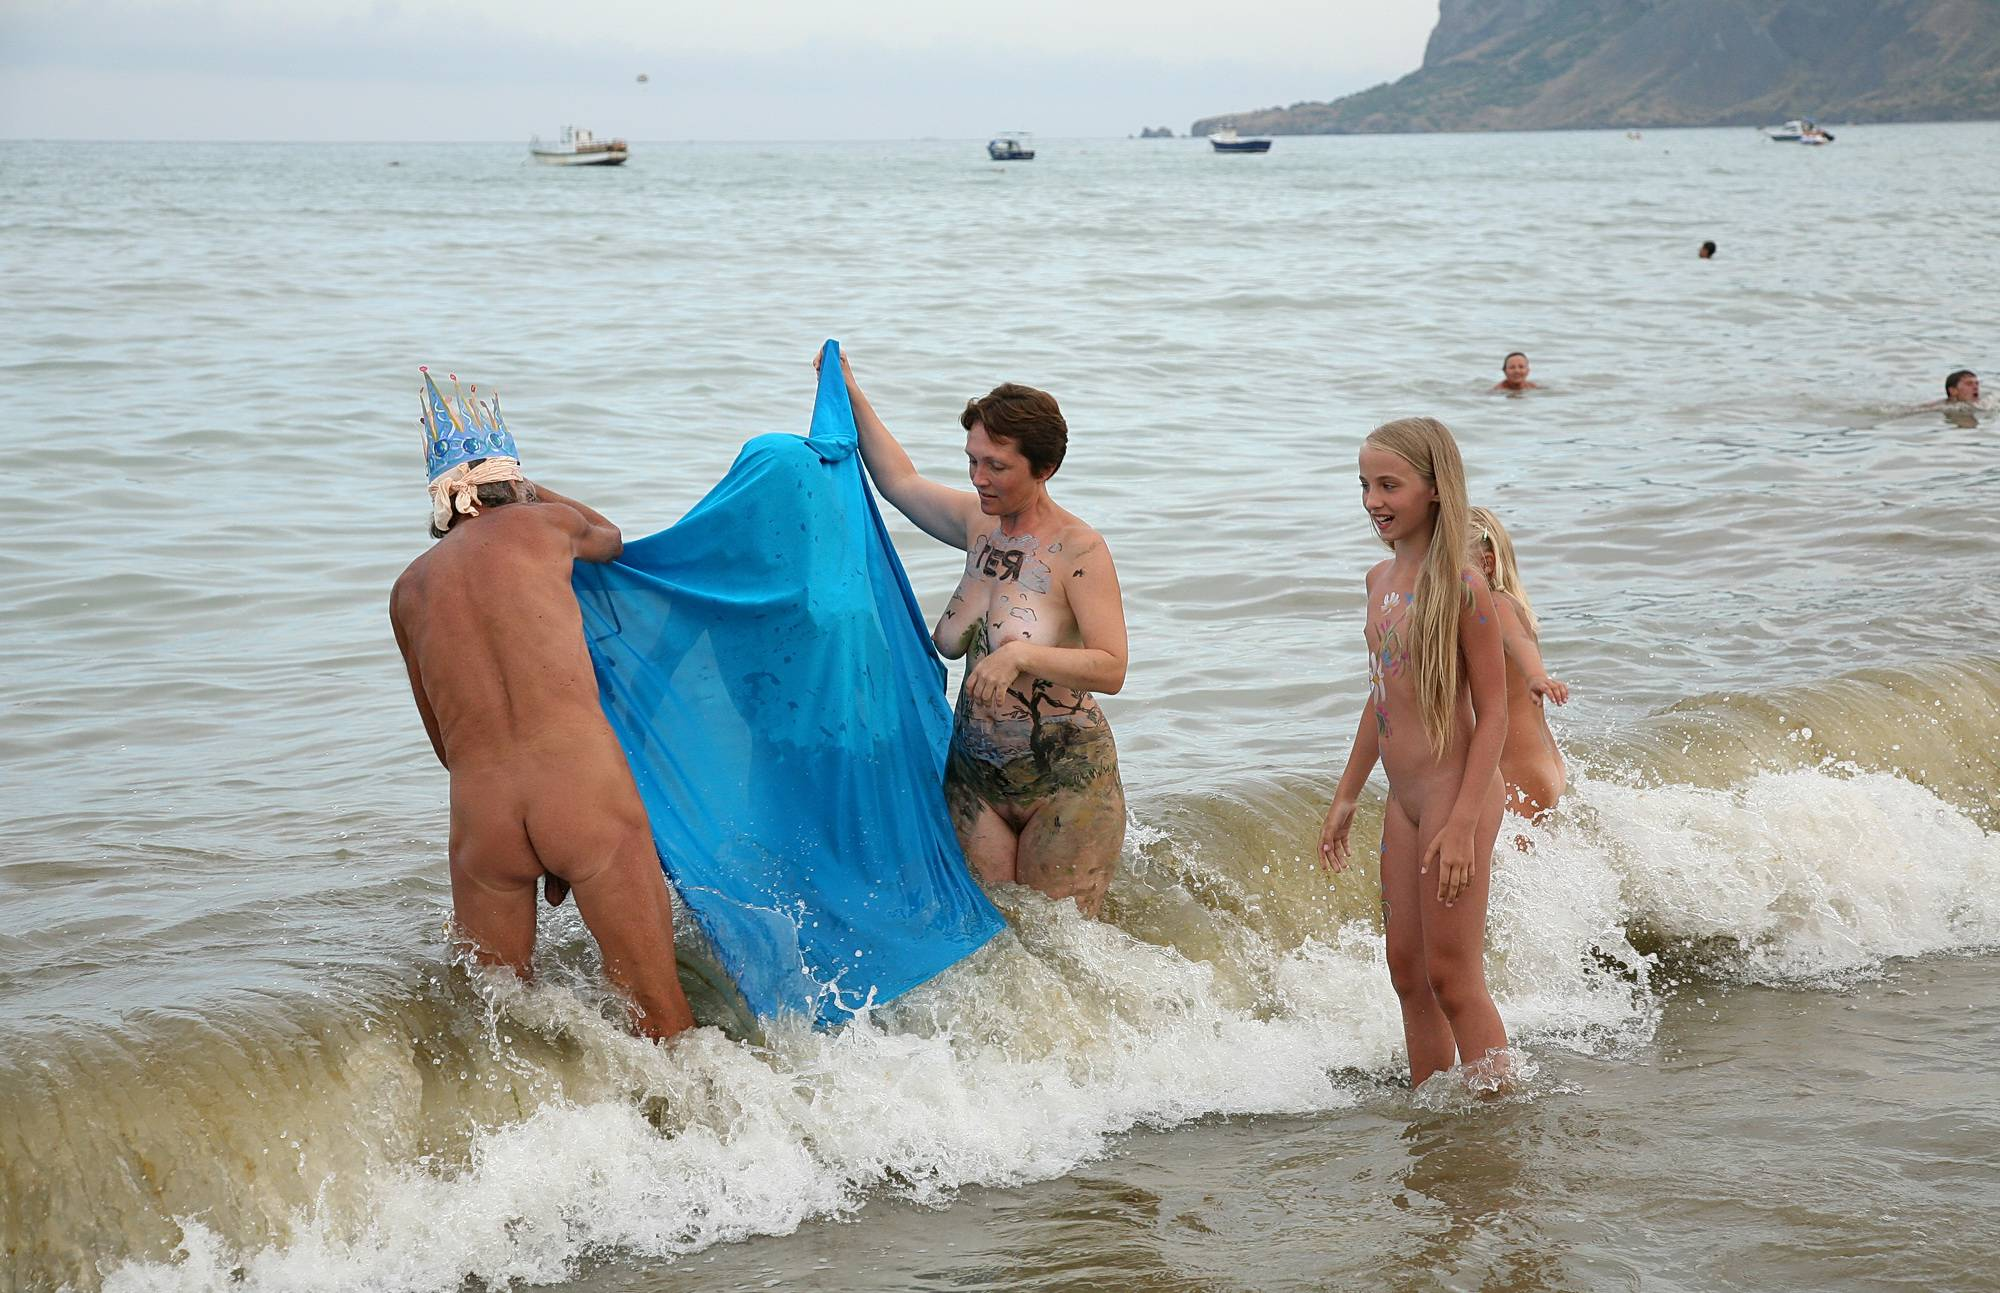 Nudist Pictures Wading Near The Coast - 1